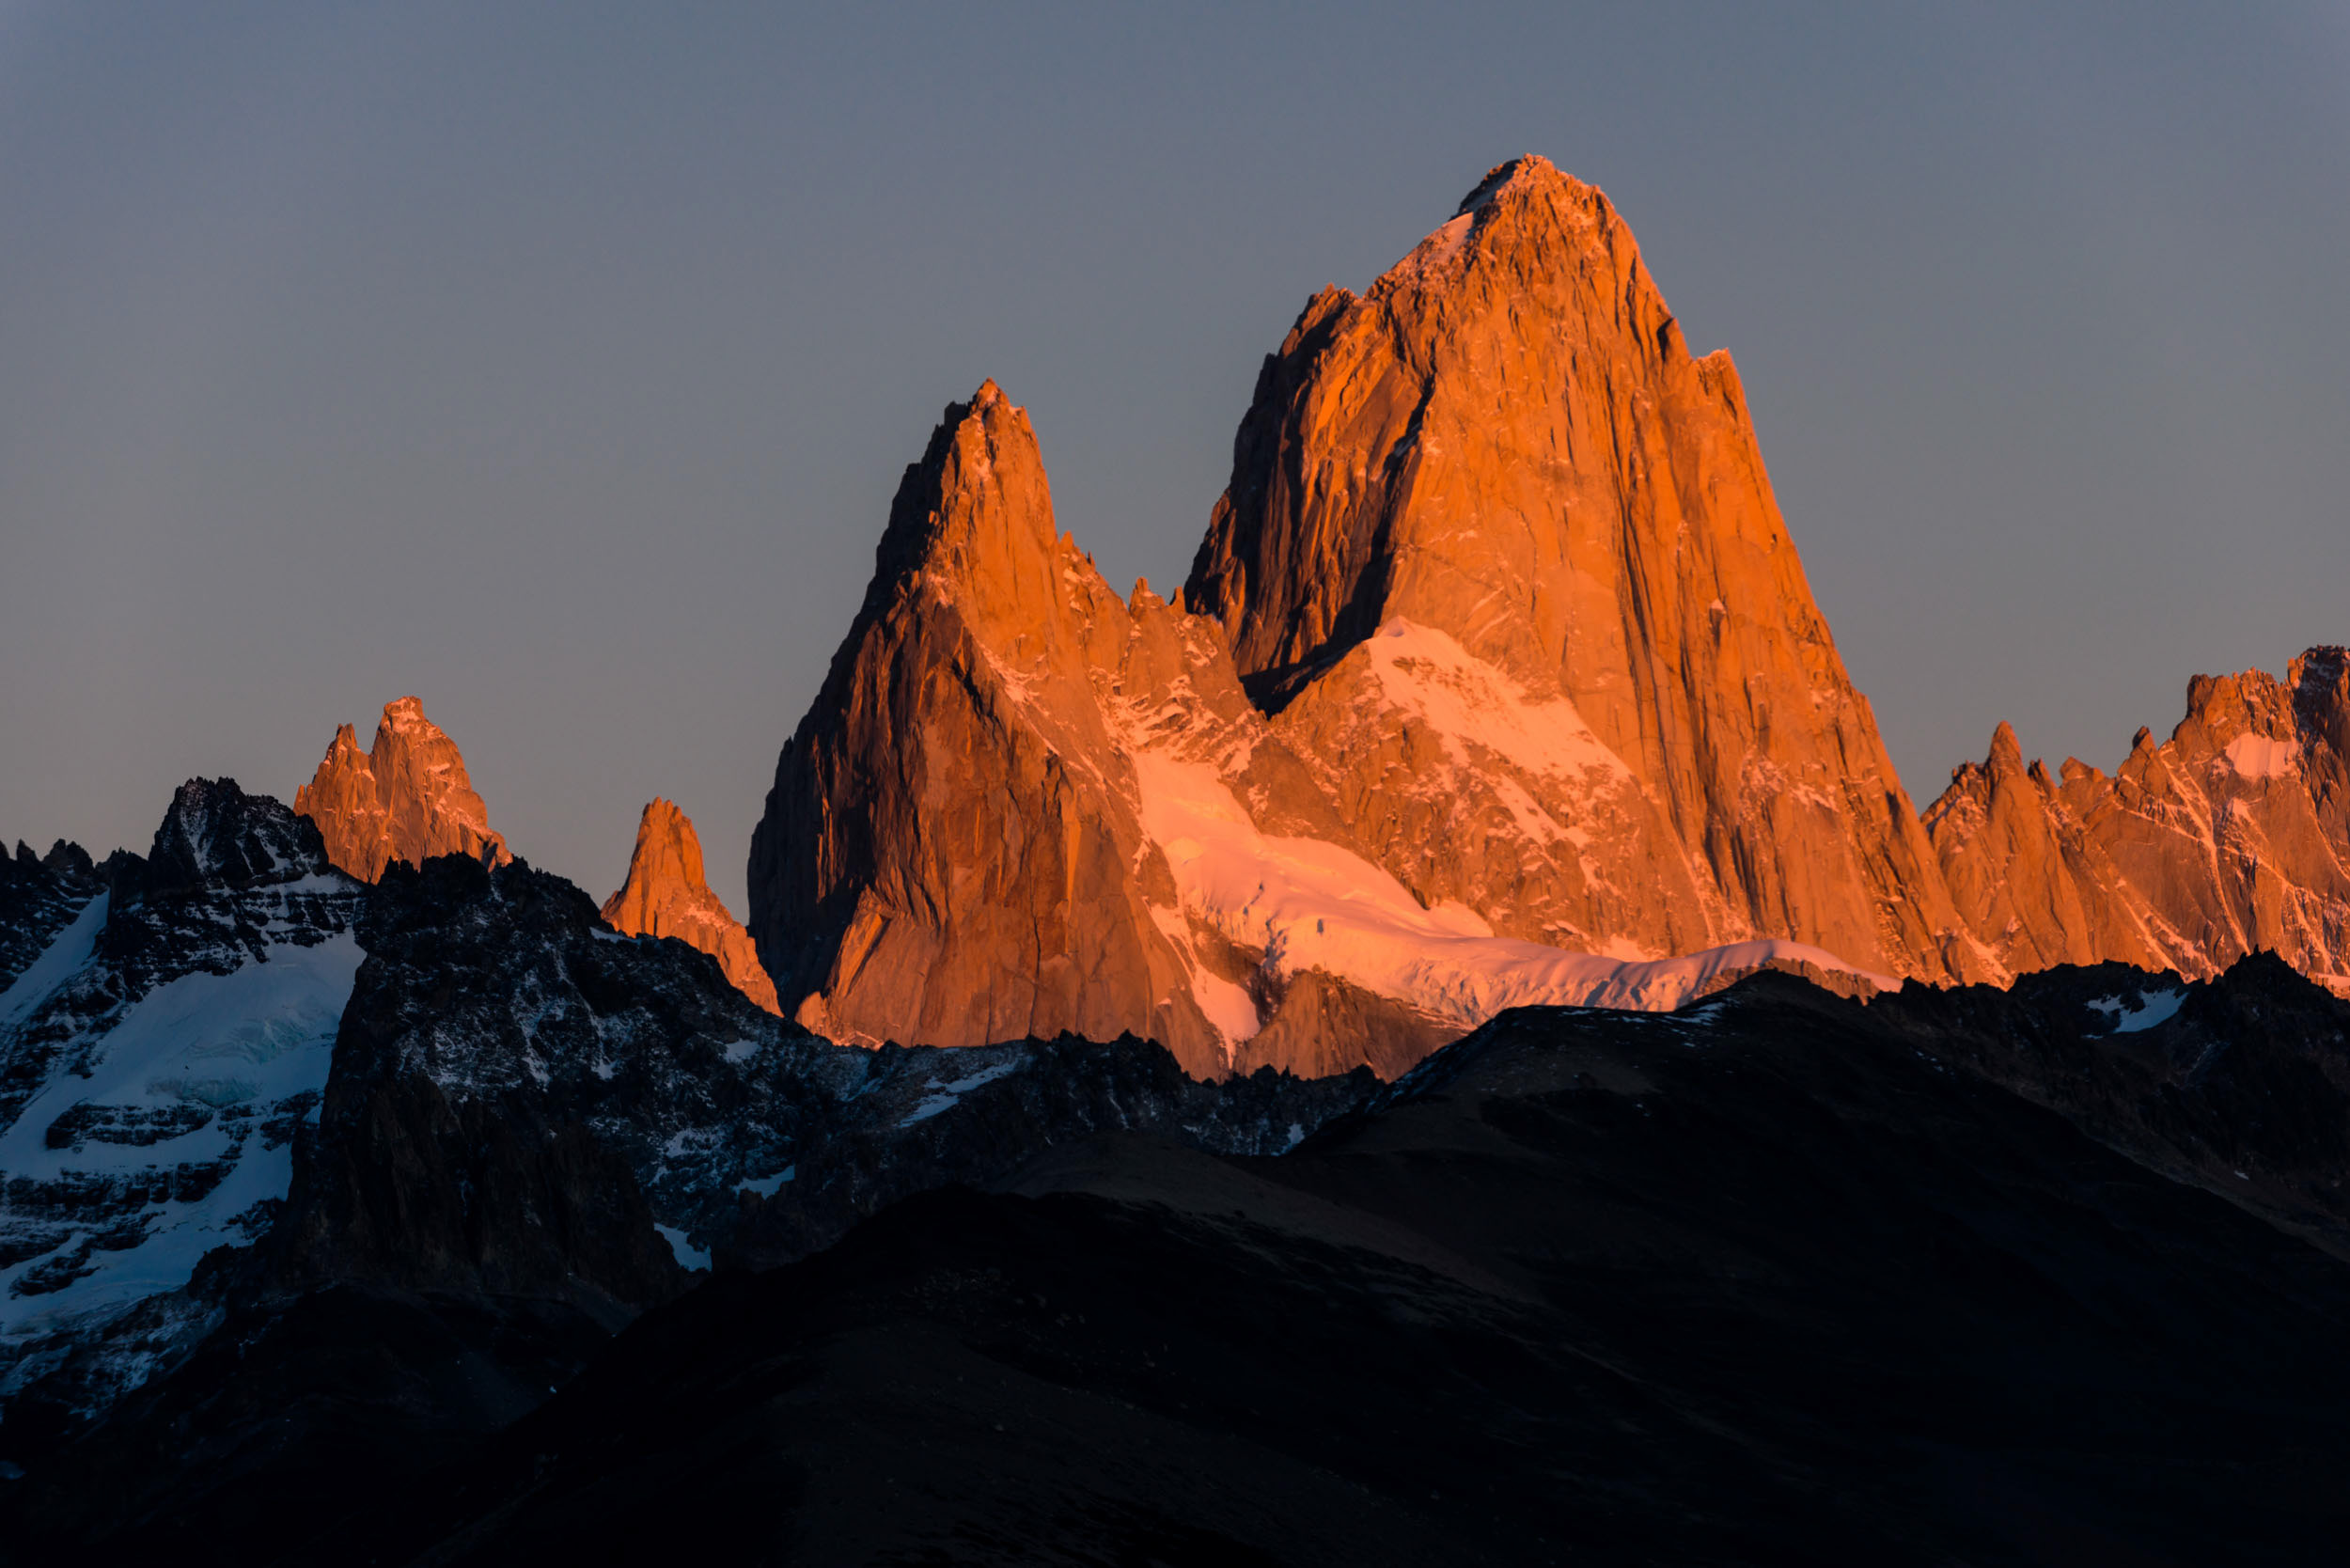 fitz-roy-mountain-range-los-glaciares-national-park-argentina